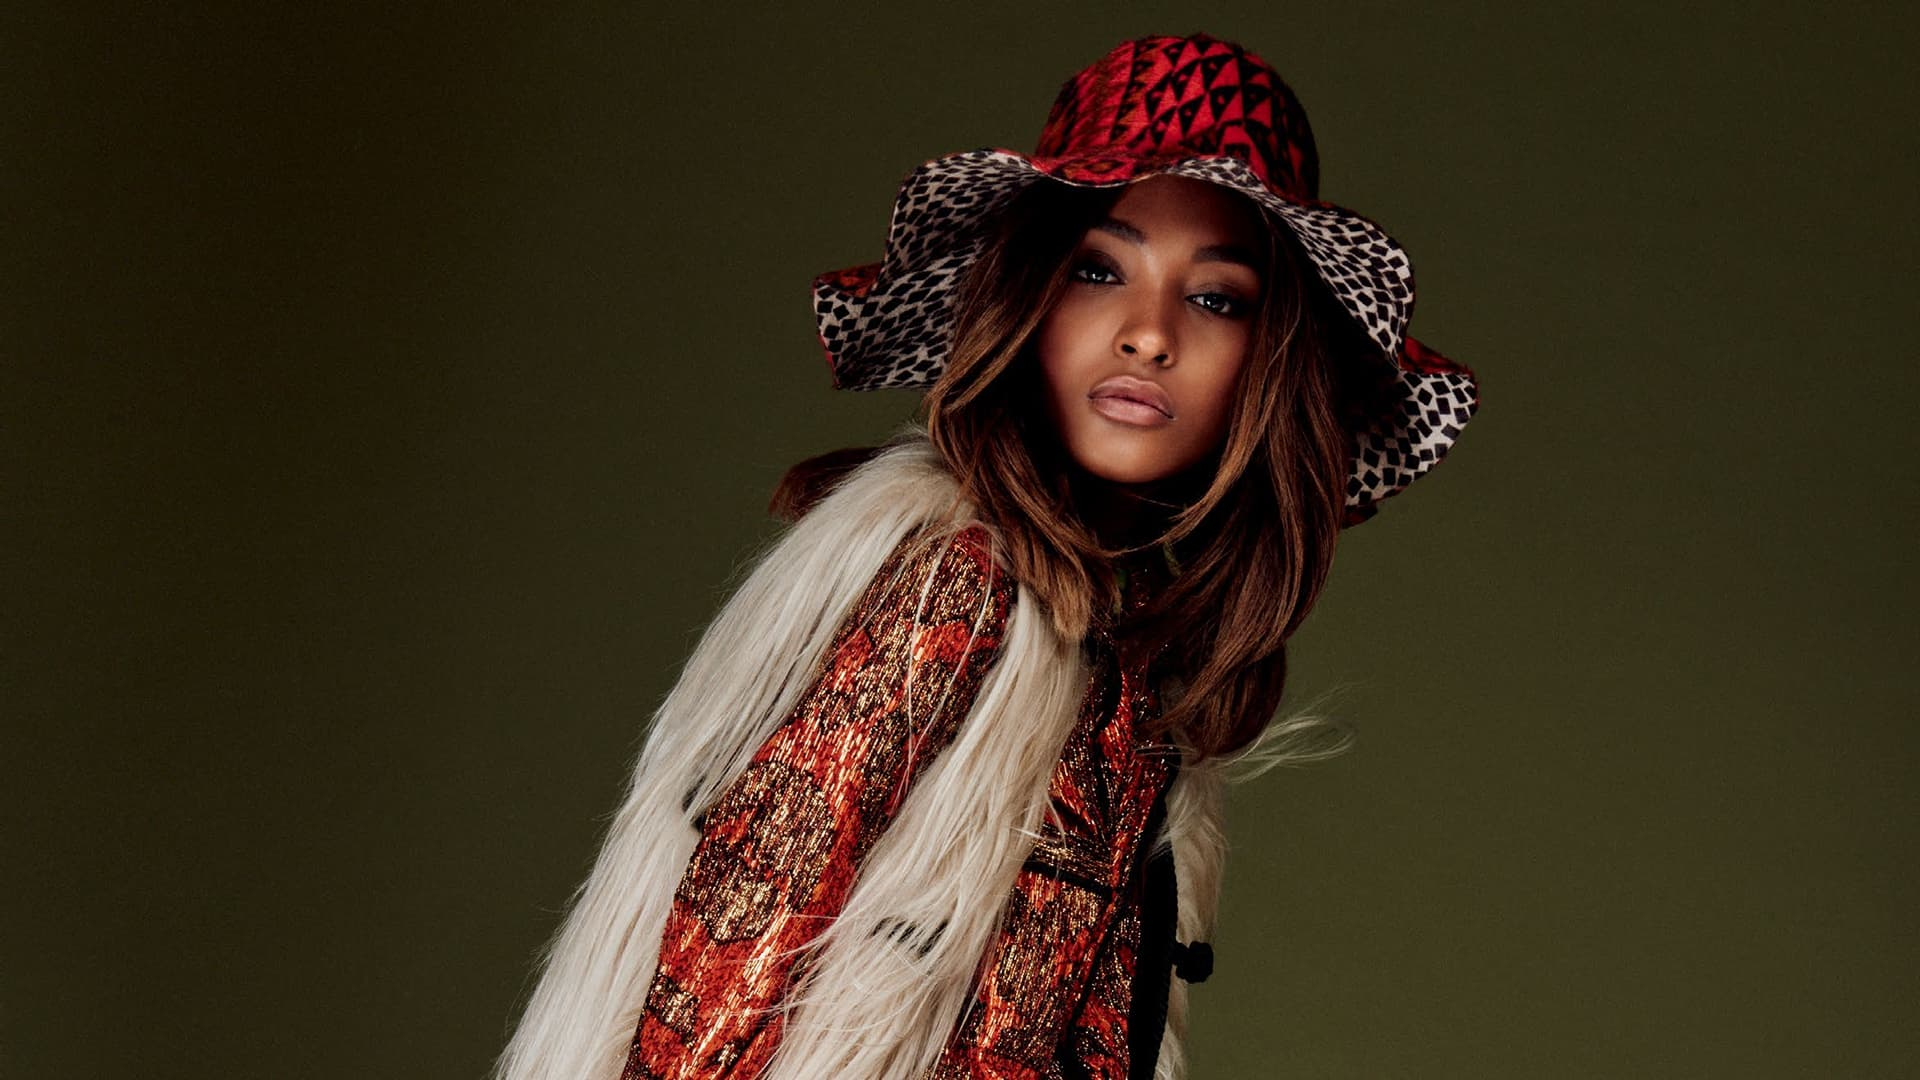 Jourdan Dunn Full HD background